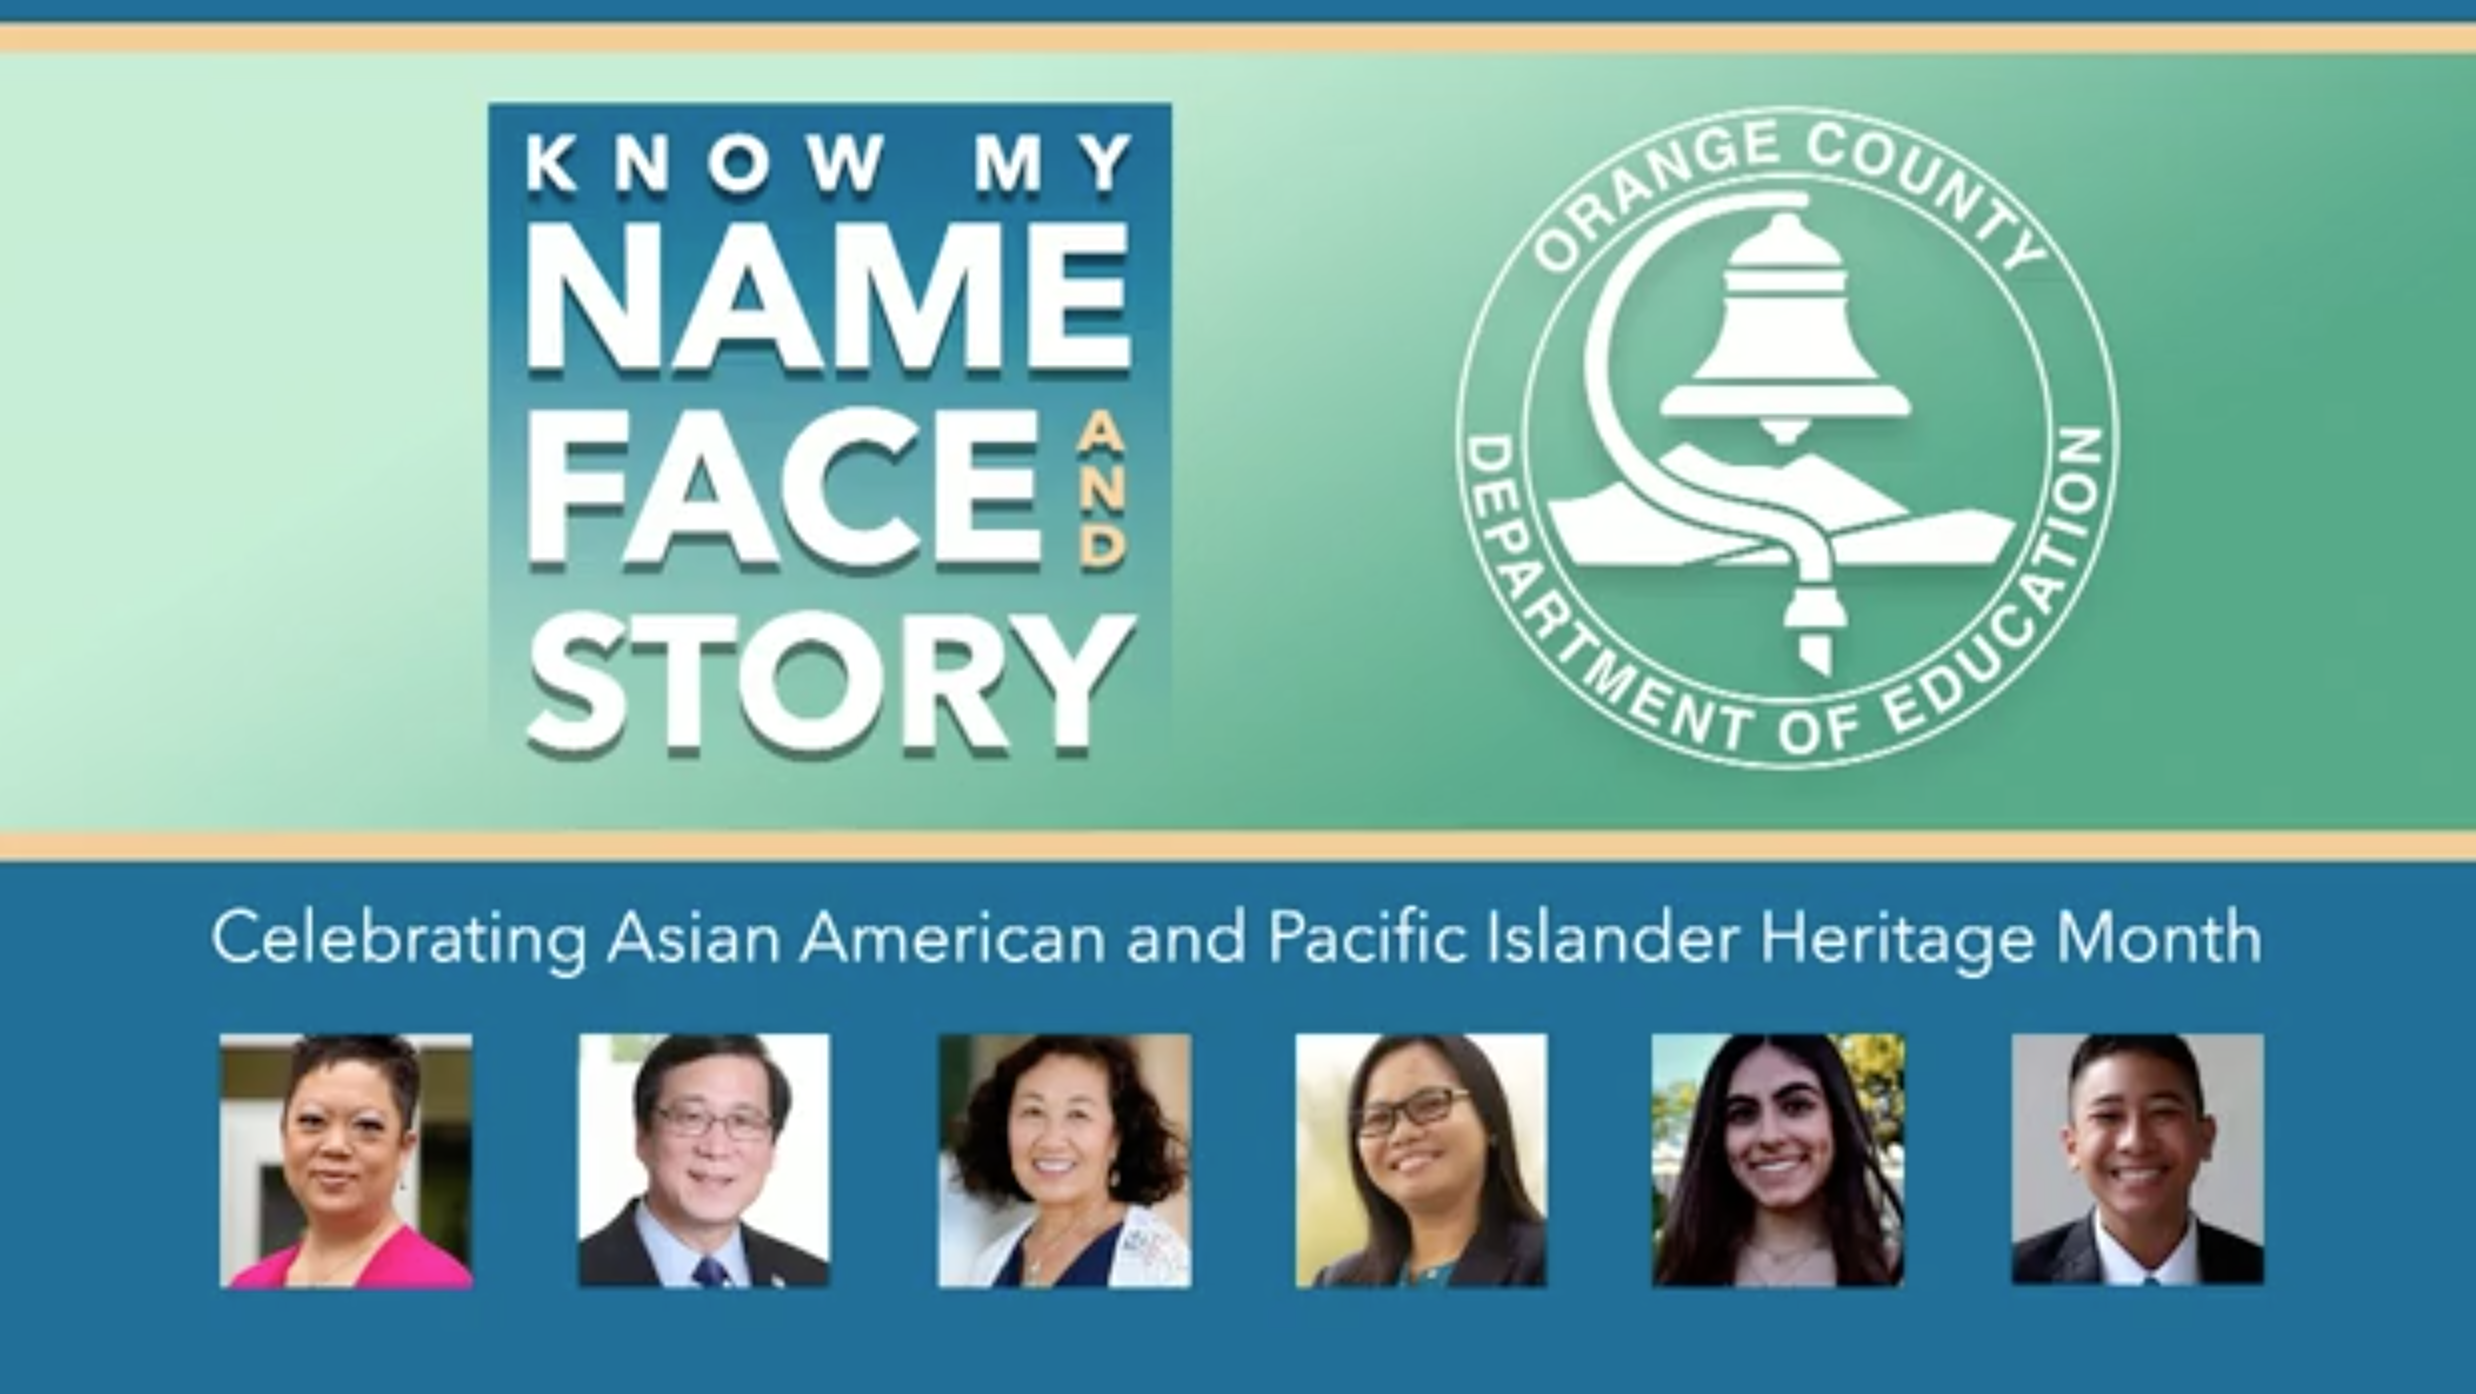 Virtual symposium addresses the challenges, accomplishments and resiliency of Asian Americans and Pacific Islanders across Orange County